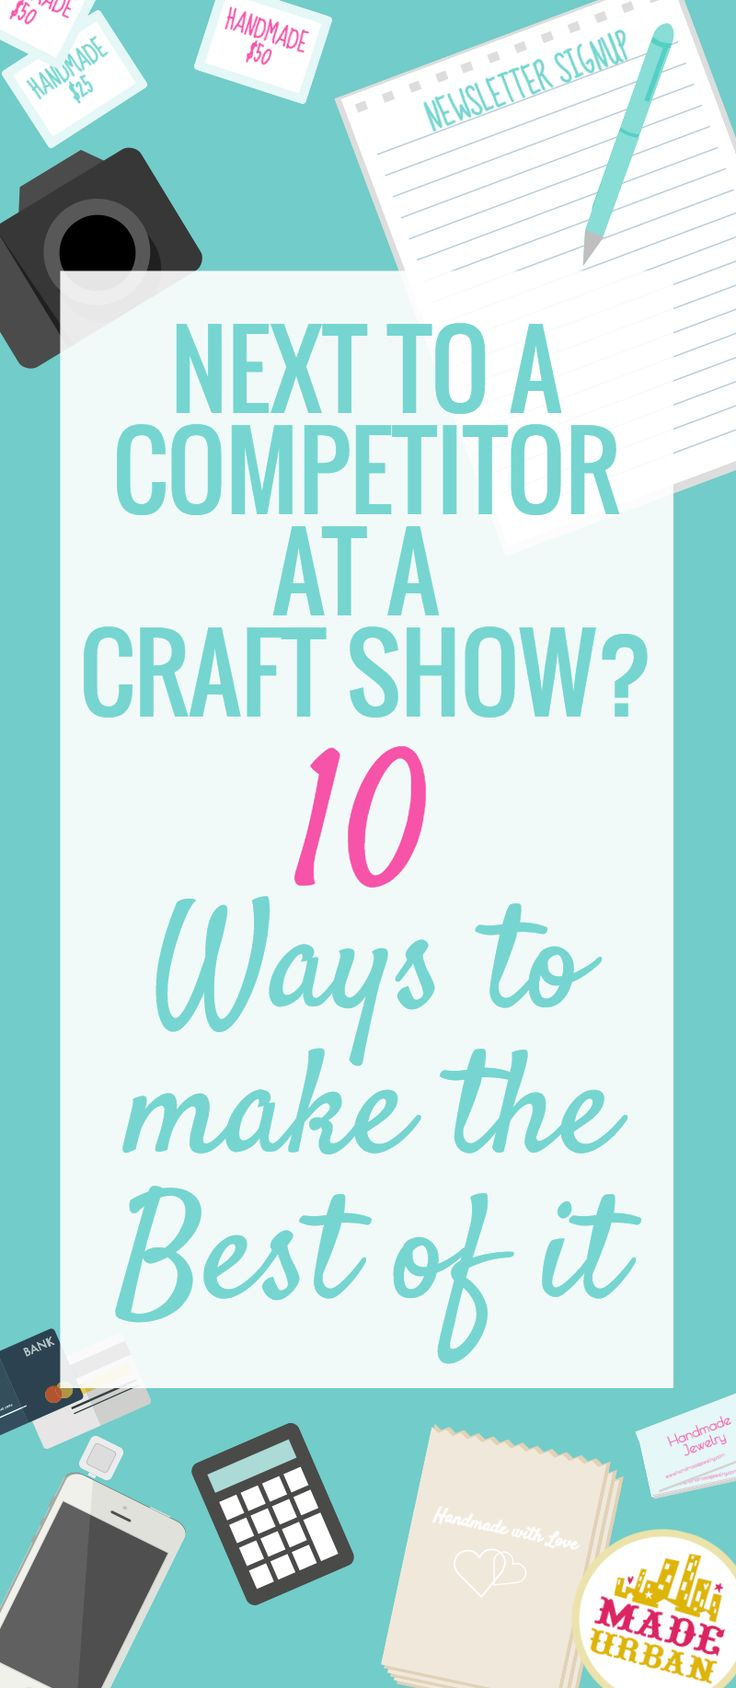 Chances are you're going to be competing with other vendors selling handmade goods under the same category as you at a craft fair...especially if you sell jewelry, knitted goods or soap. Click for some tips to stand out from them and make the most of the event.